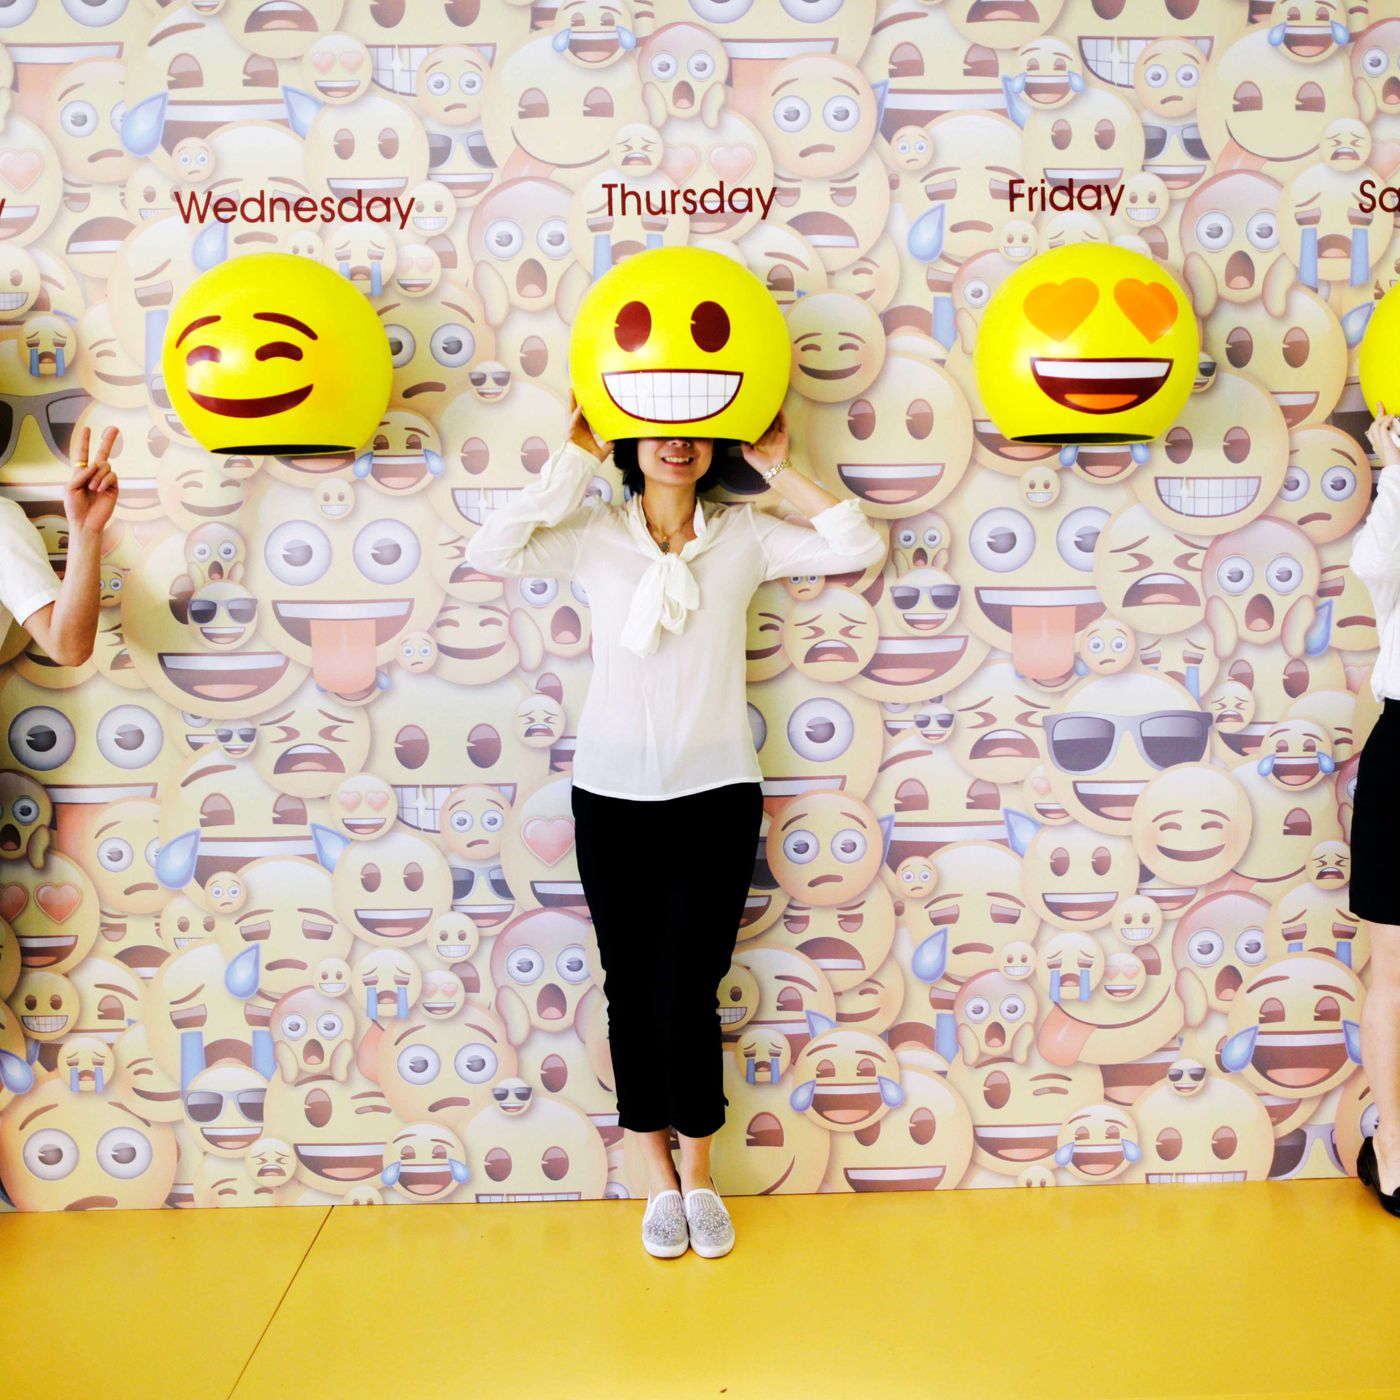 Emoji meanings reveal more about you than you think - Vox